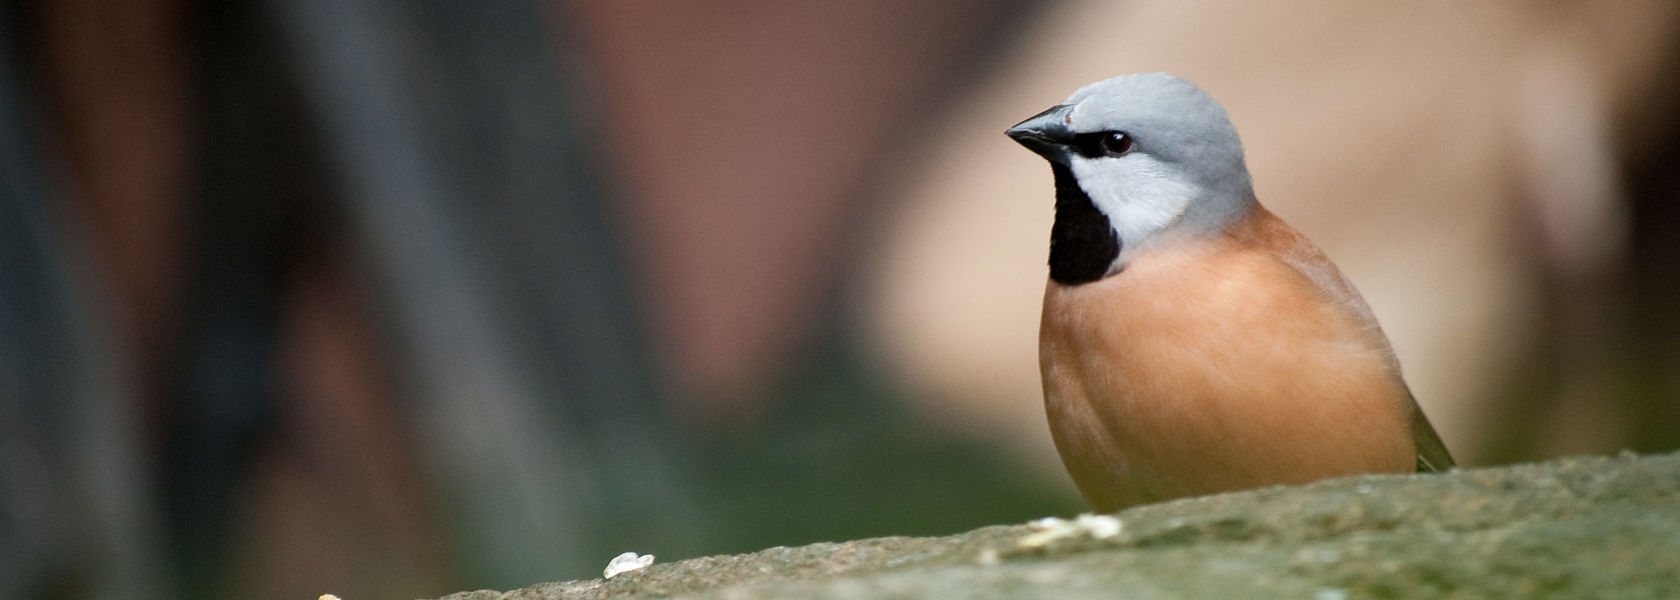 Adani's finch plan approved